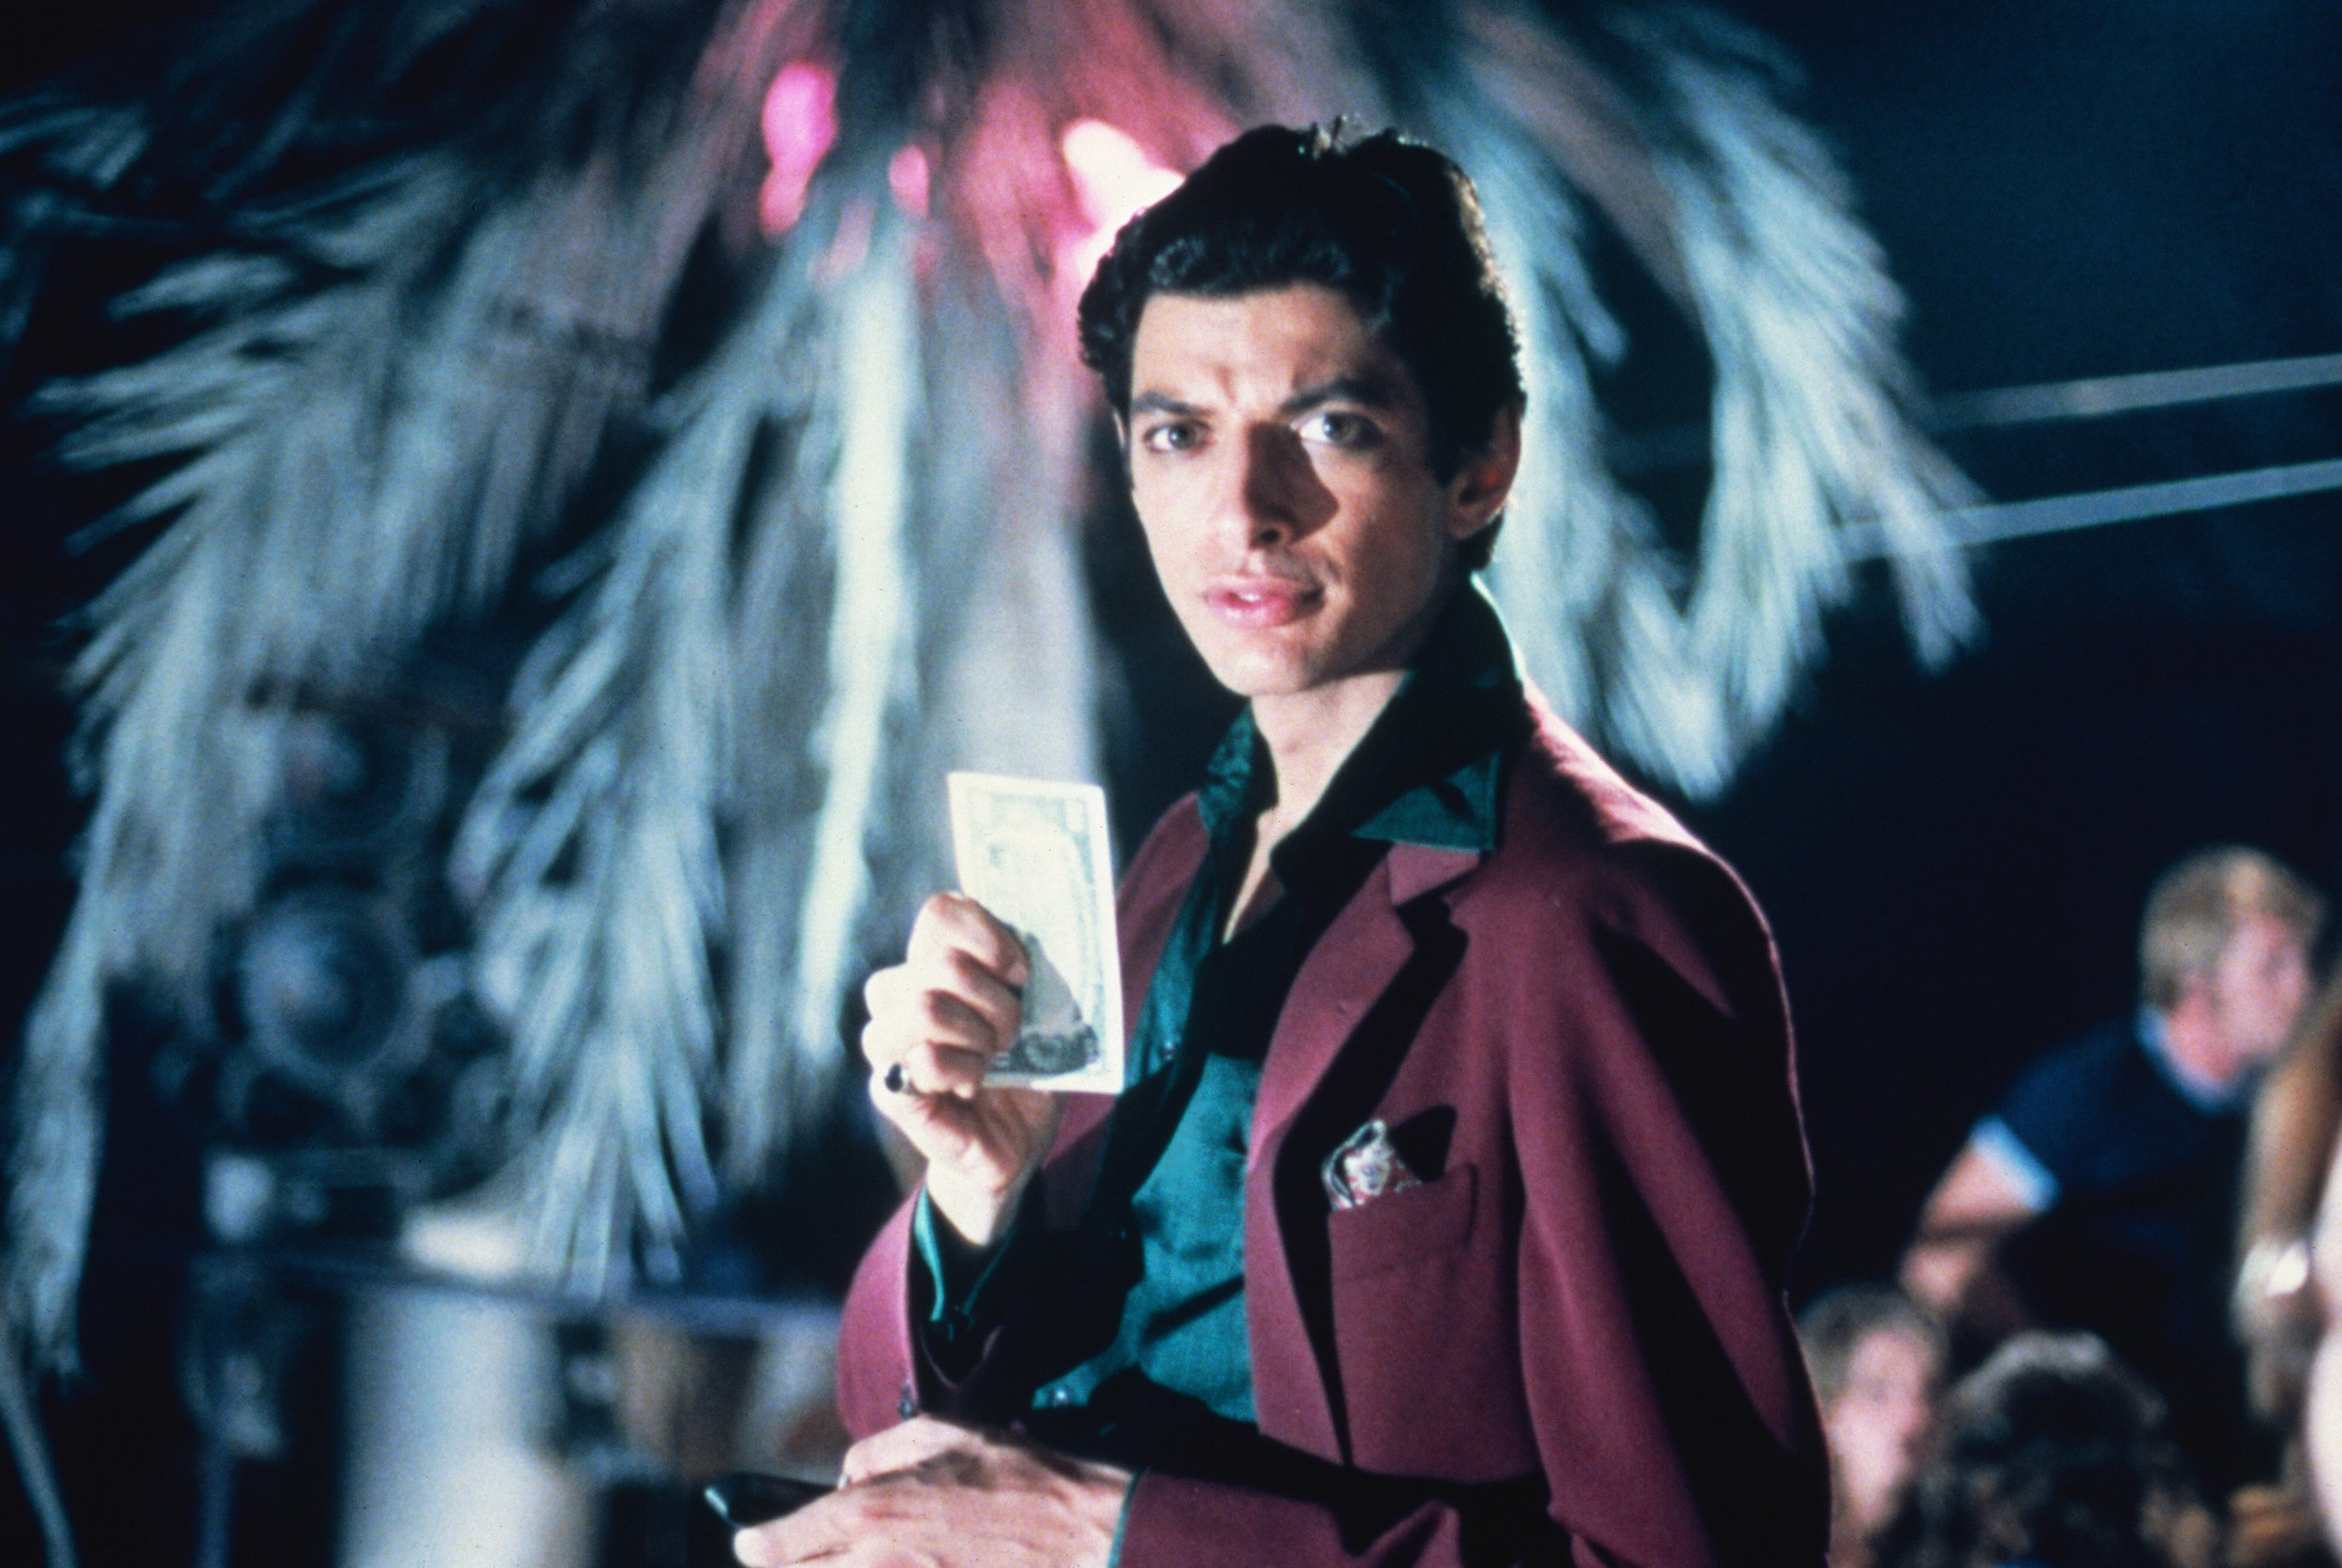 """THANK GOD IT'S FRIDAY (1978 / 35mm Print) - Fri Feb 15th 6:45pm / Quad Cinema, New York CityDisco fever affords Jeff Goldblum a player lifestyle as owner of the L.A.'s hottest dance palace, and during one wild Friday night on-site he pursues married Andrea Howard. In the house: Debra Winger, deejay Ray Vitte, Chick Vennera, Terri Nunn (later lead singer of the group Berlin), and Paul Jabara — who won an Oscar for his song """"Last Dance,"""" performed onscreen, indelibly, by Donna Summer; also on the bill are The Commodores, with their tasty jam """"Too Hot ta Trot.""""More info HERE"""